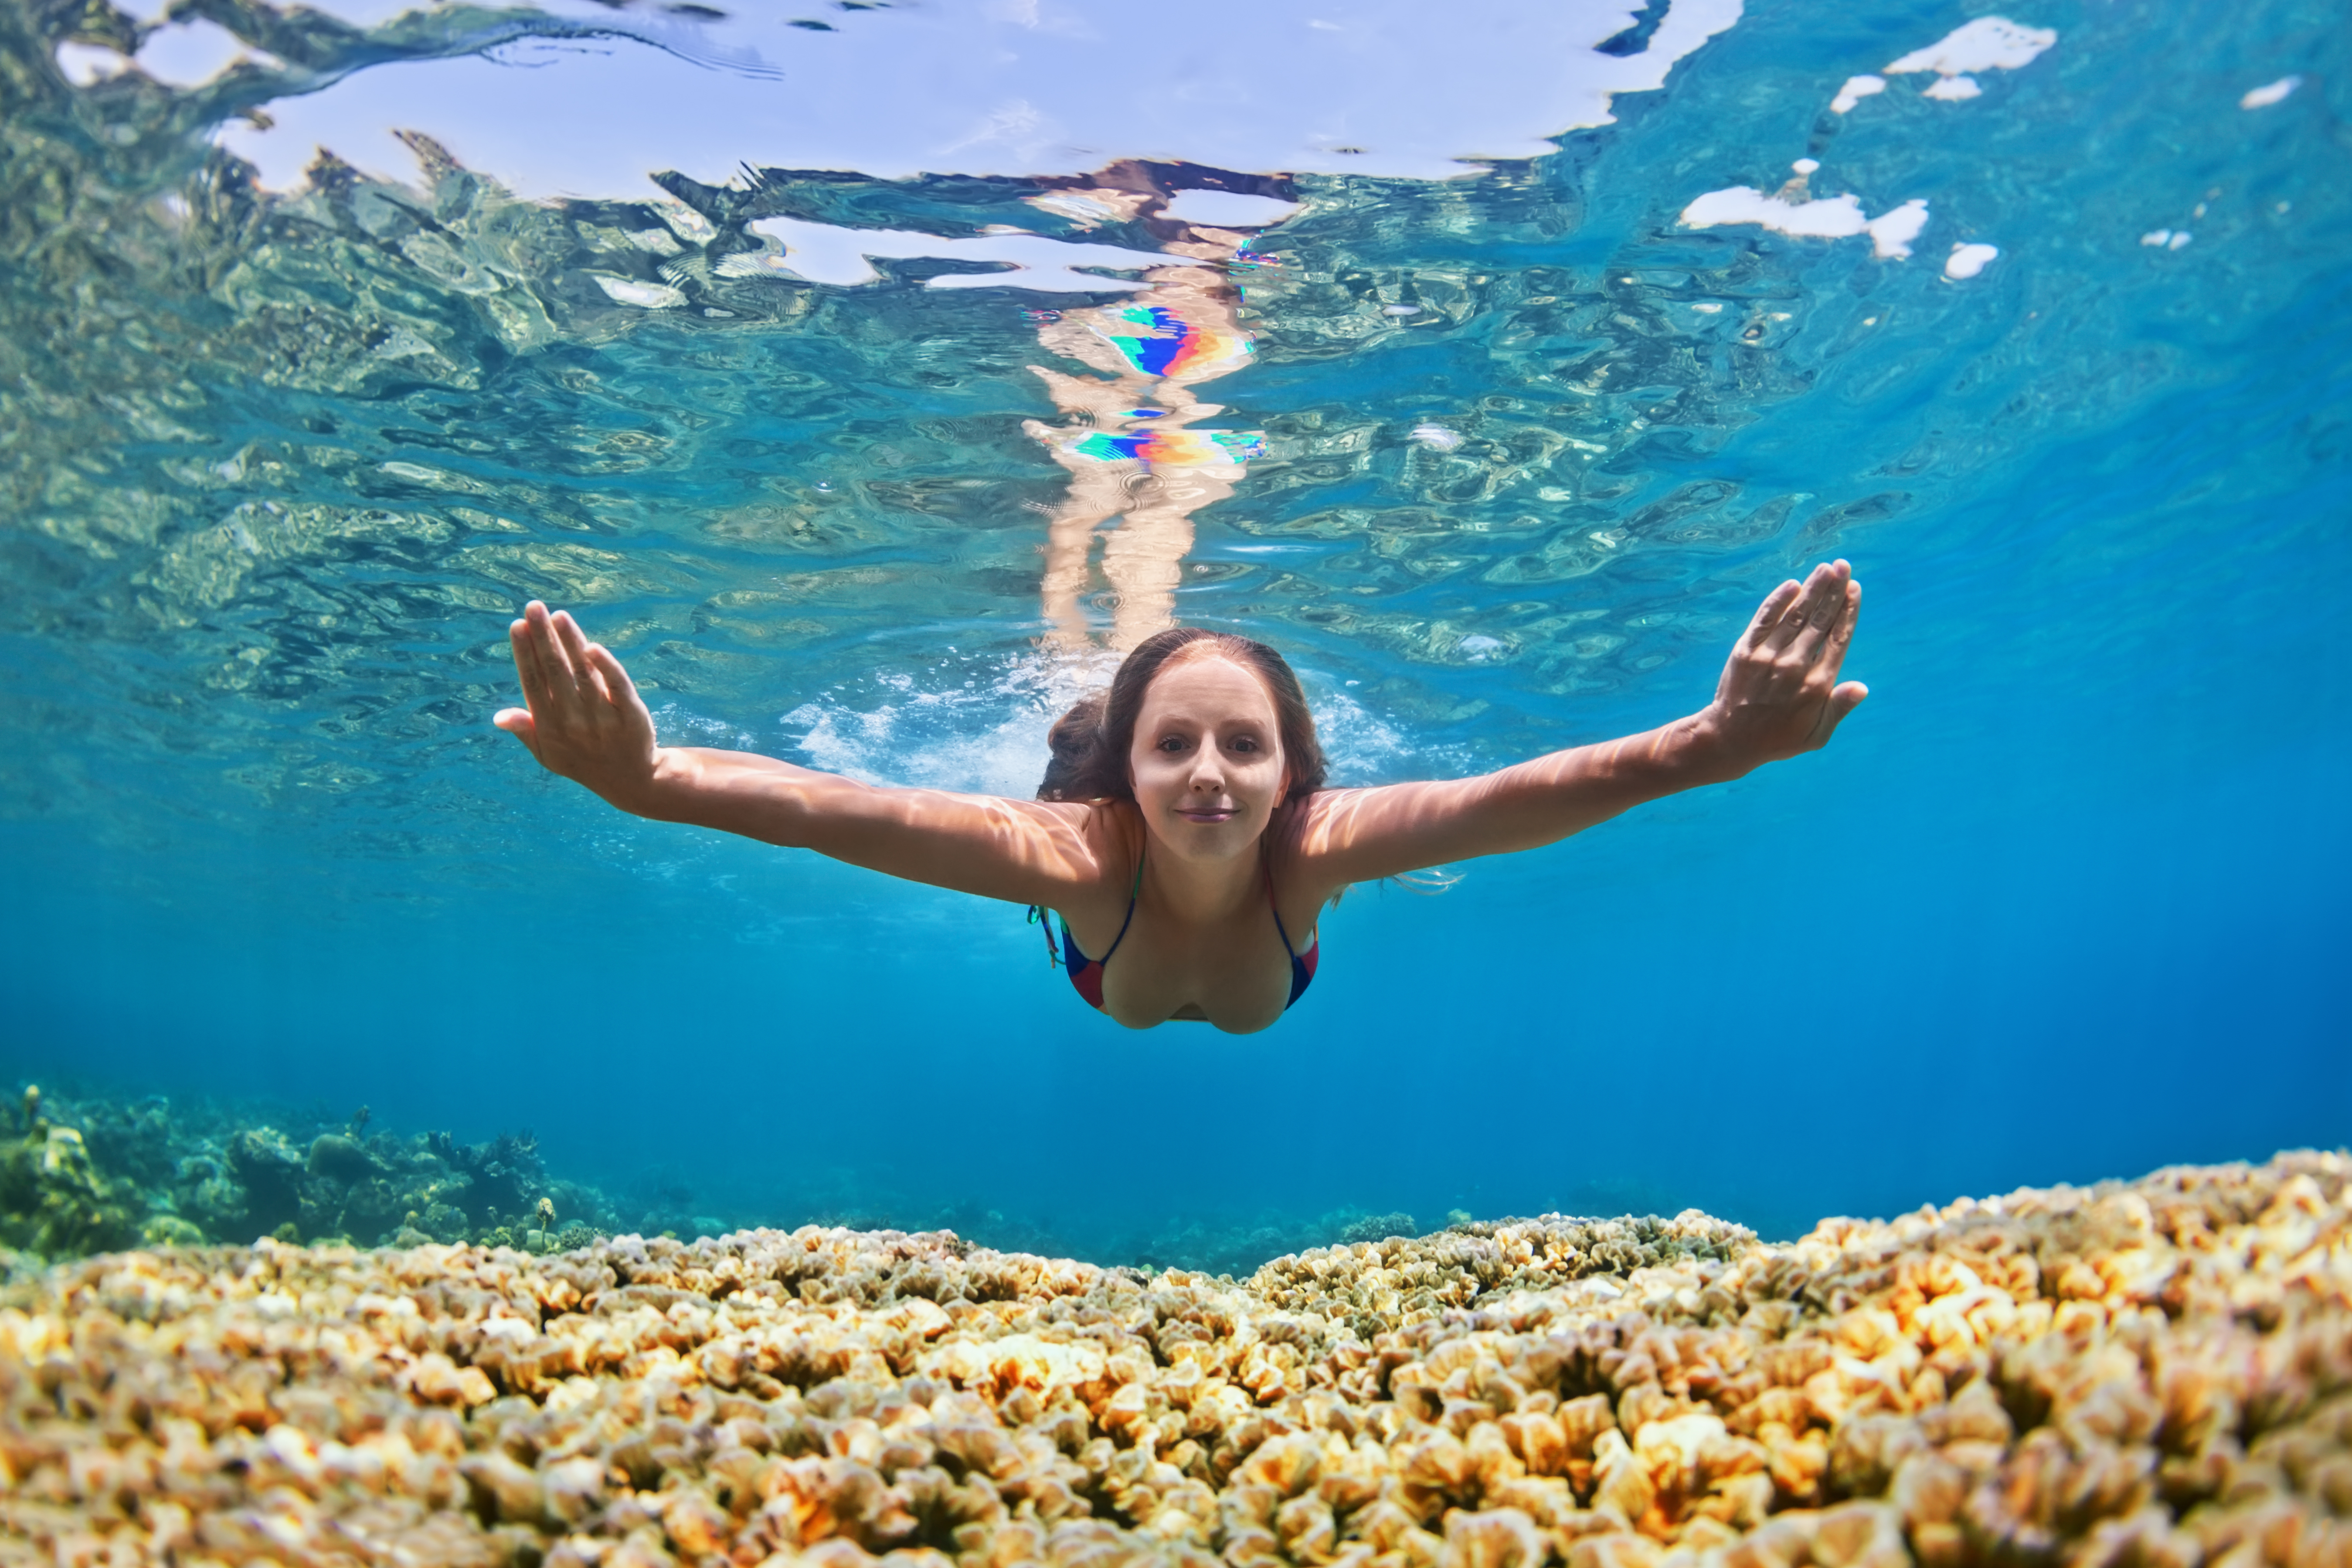 Happy beautiful girl - young woman dive underwater with fun over coral reef in sea pool. Healthy active lifestyle people water sport outdoor activity and swimming lessons on beach summer holidays.